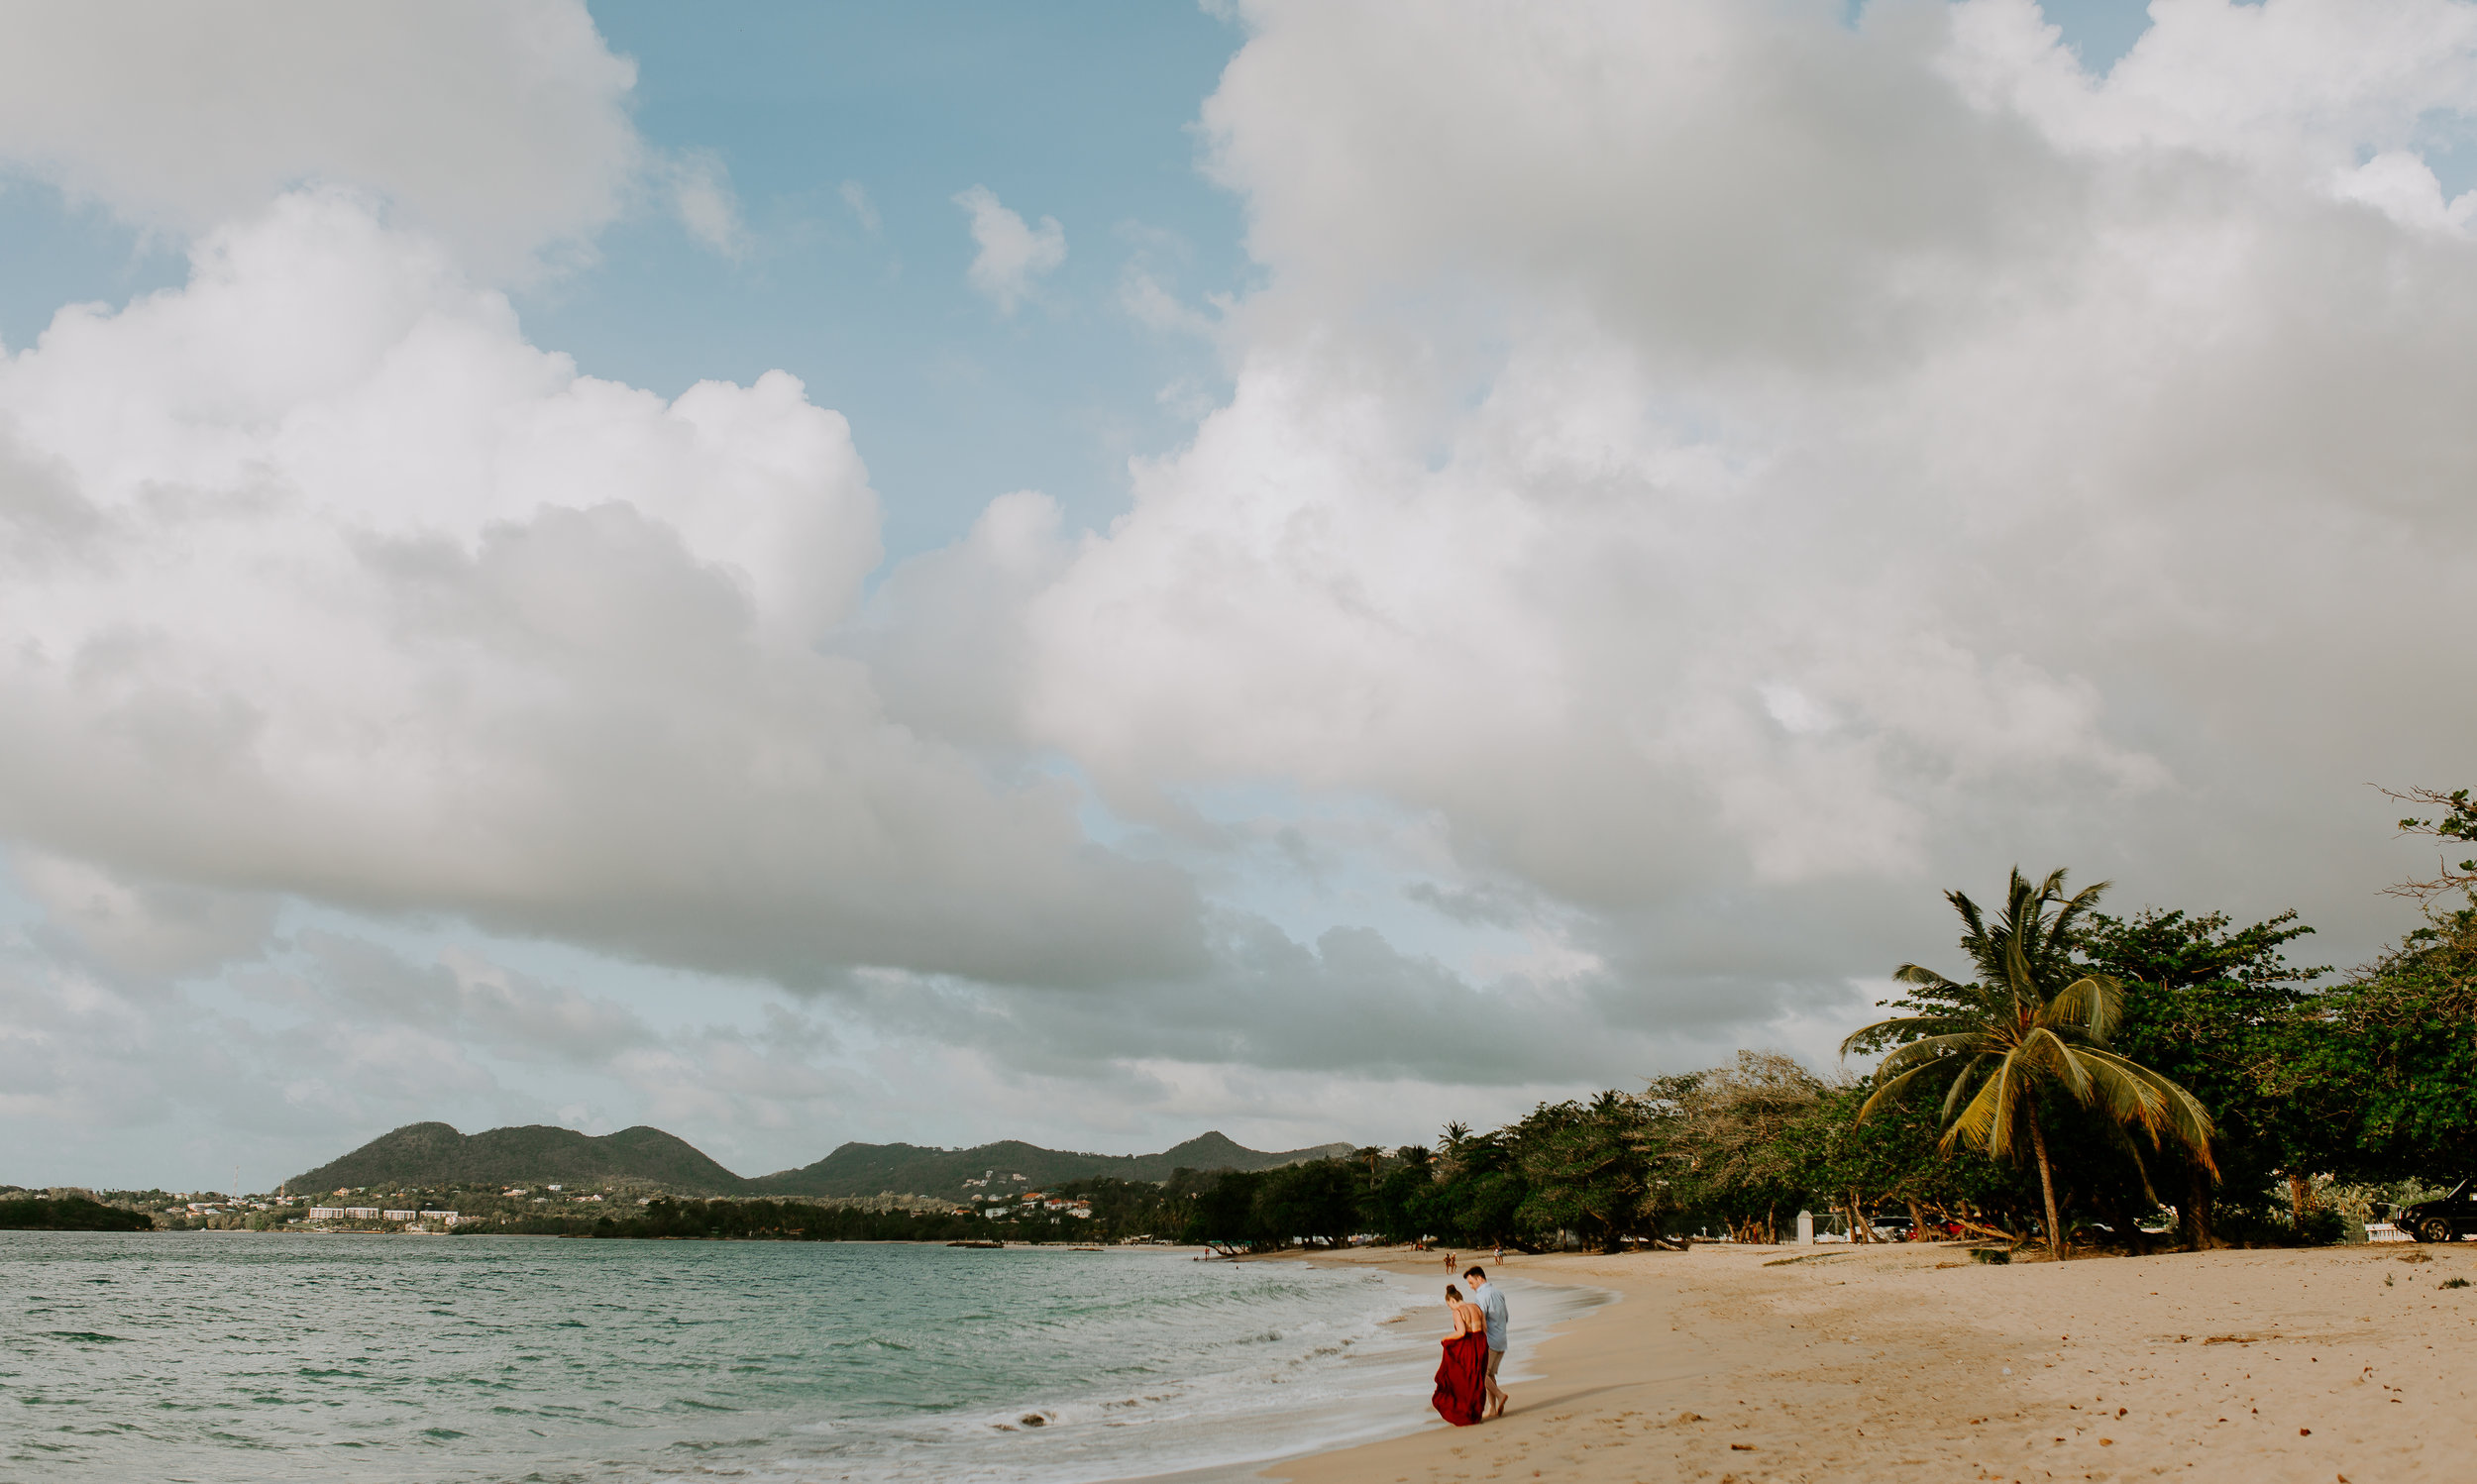 nicole-daacke-photography-st-lucia-destination-wedding-photographer-day-after-session-castries-sandals-resort-adventure-island-engagement-soufriere-piton-adventure-session-photos-photographer-34.jpg